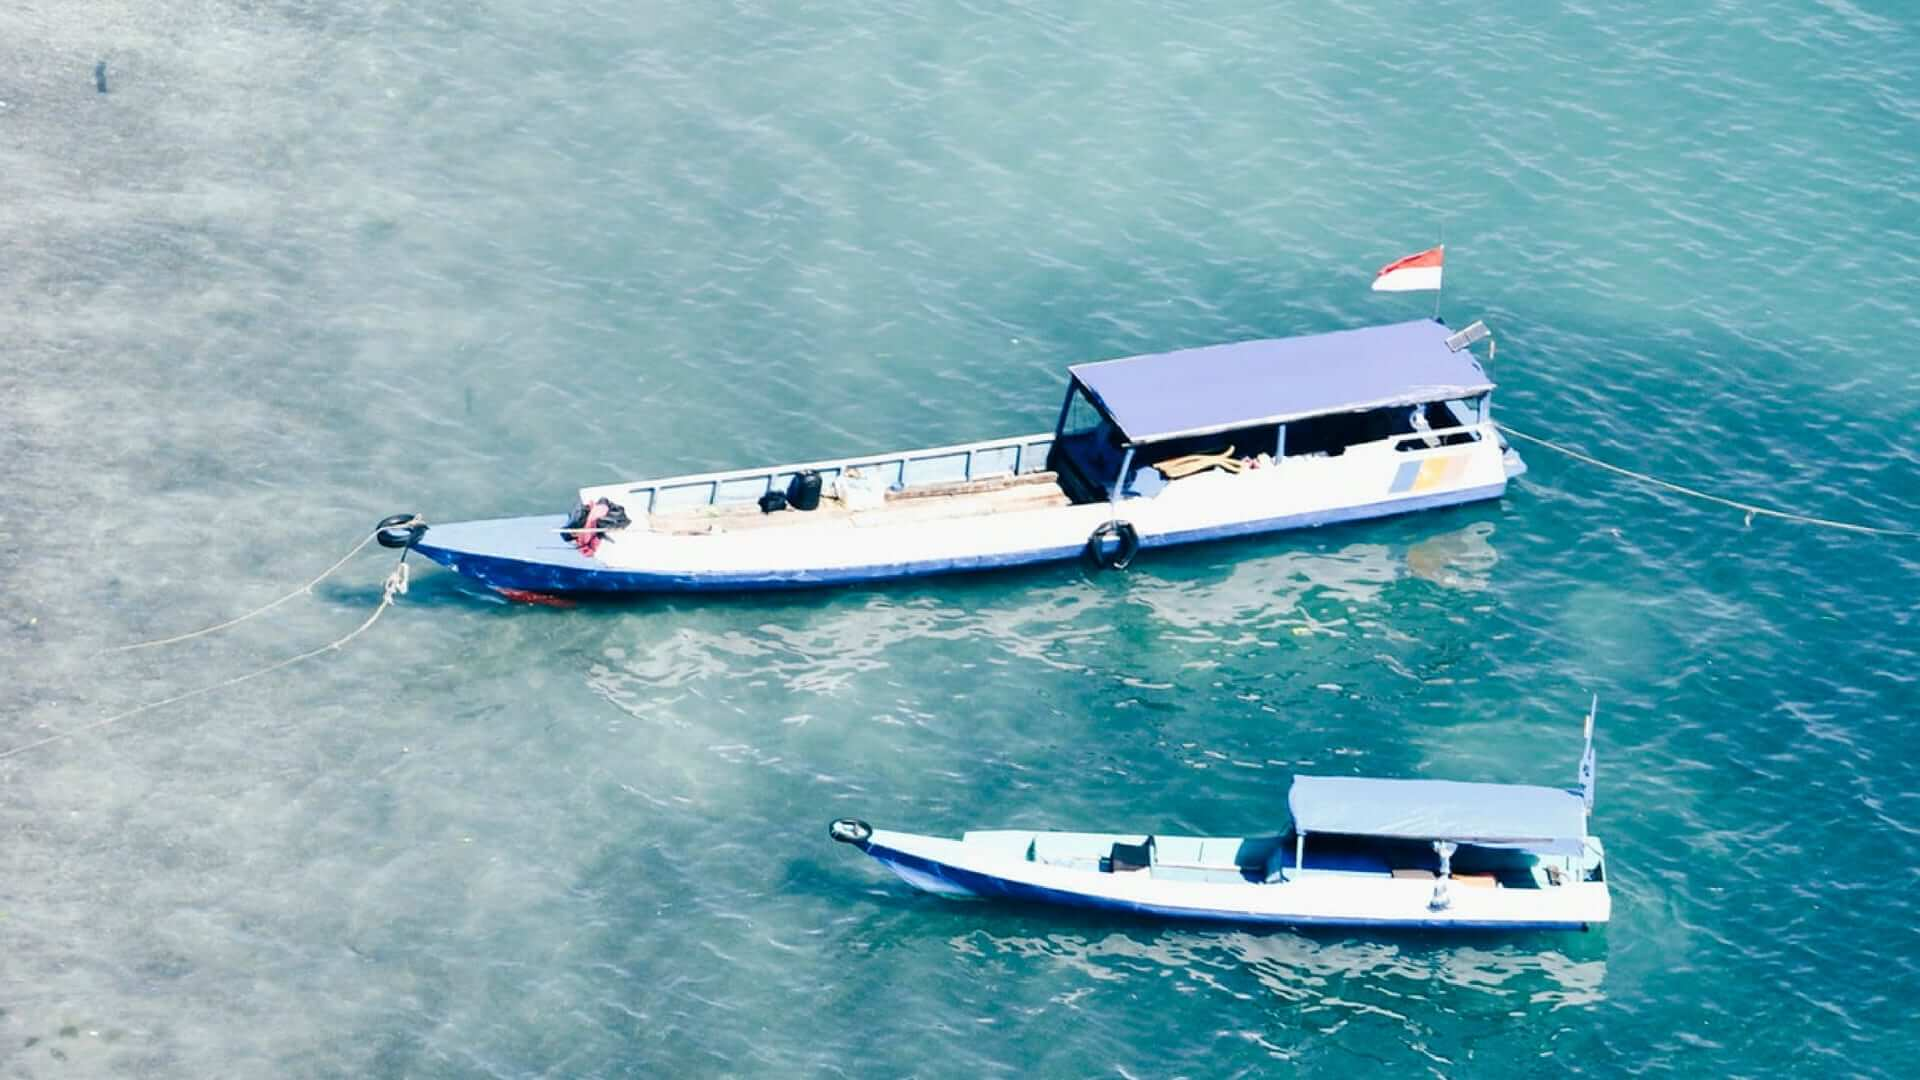 Two boats are laying in the water near Komodo Island.